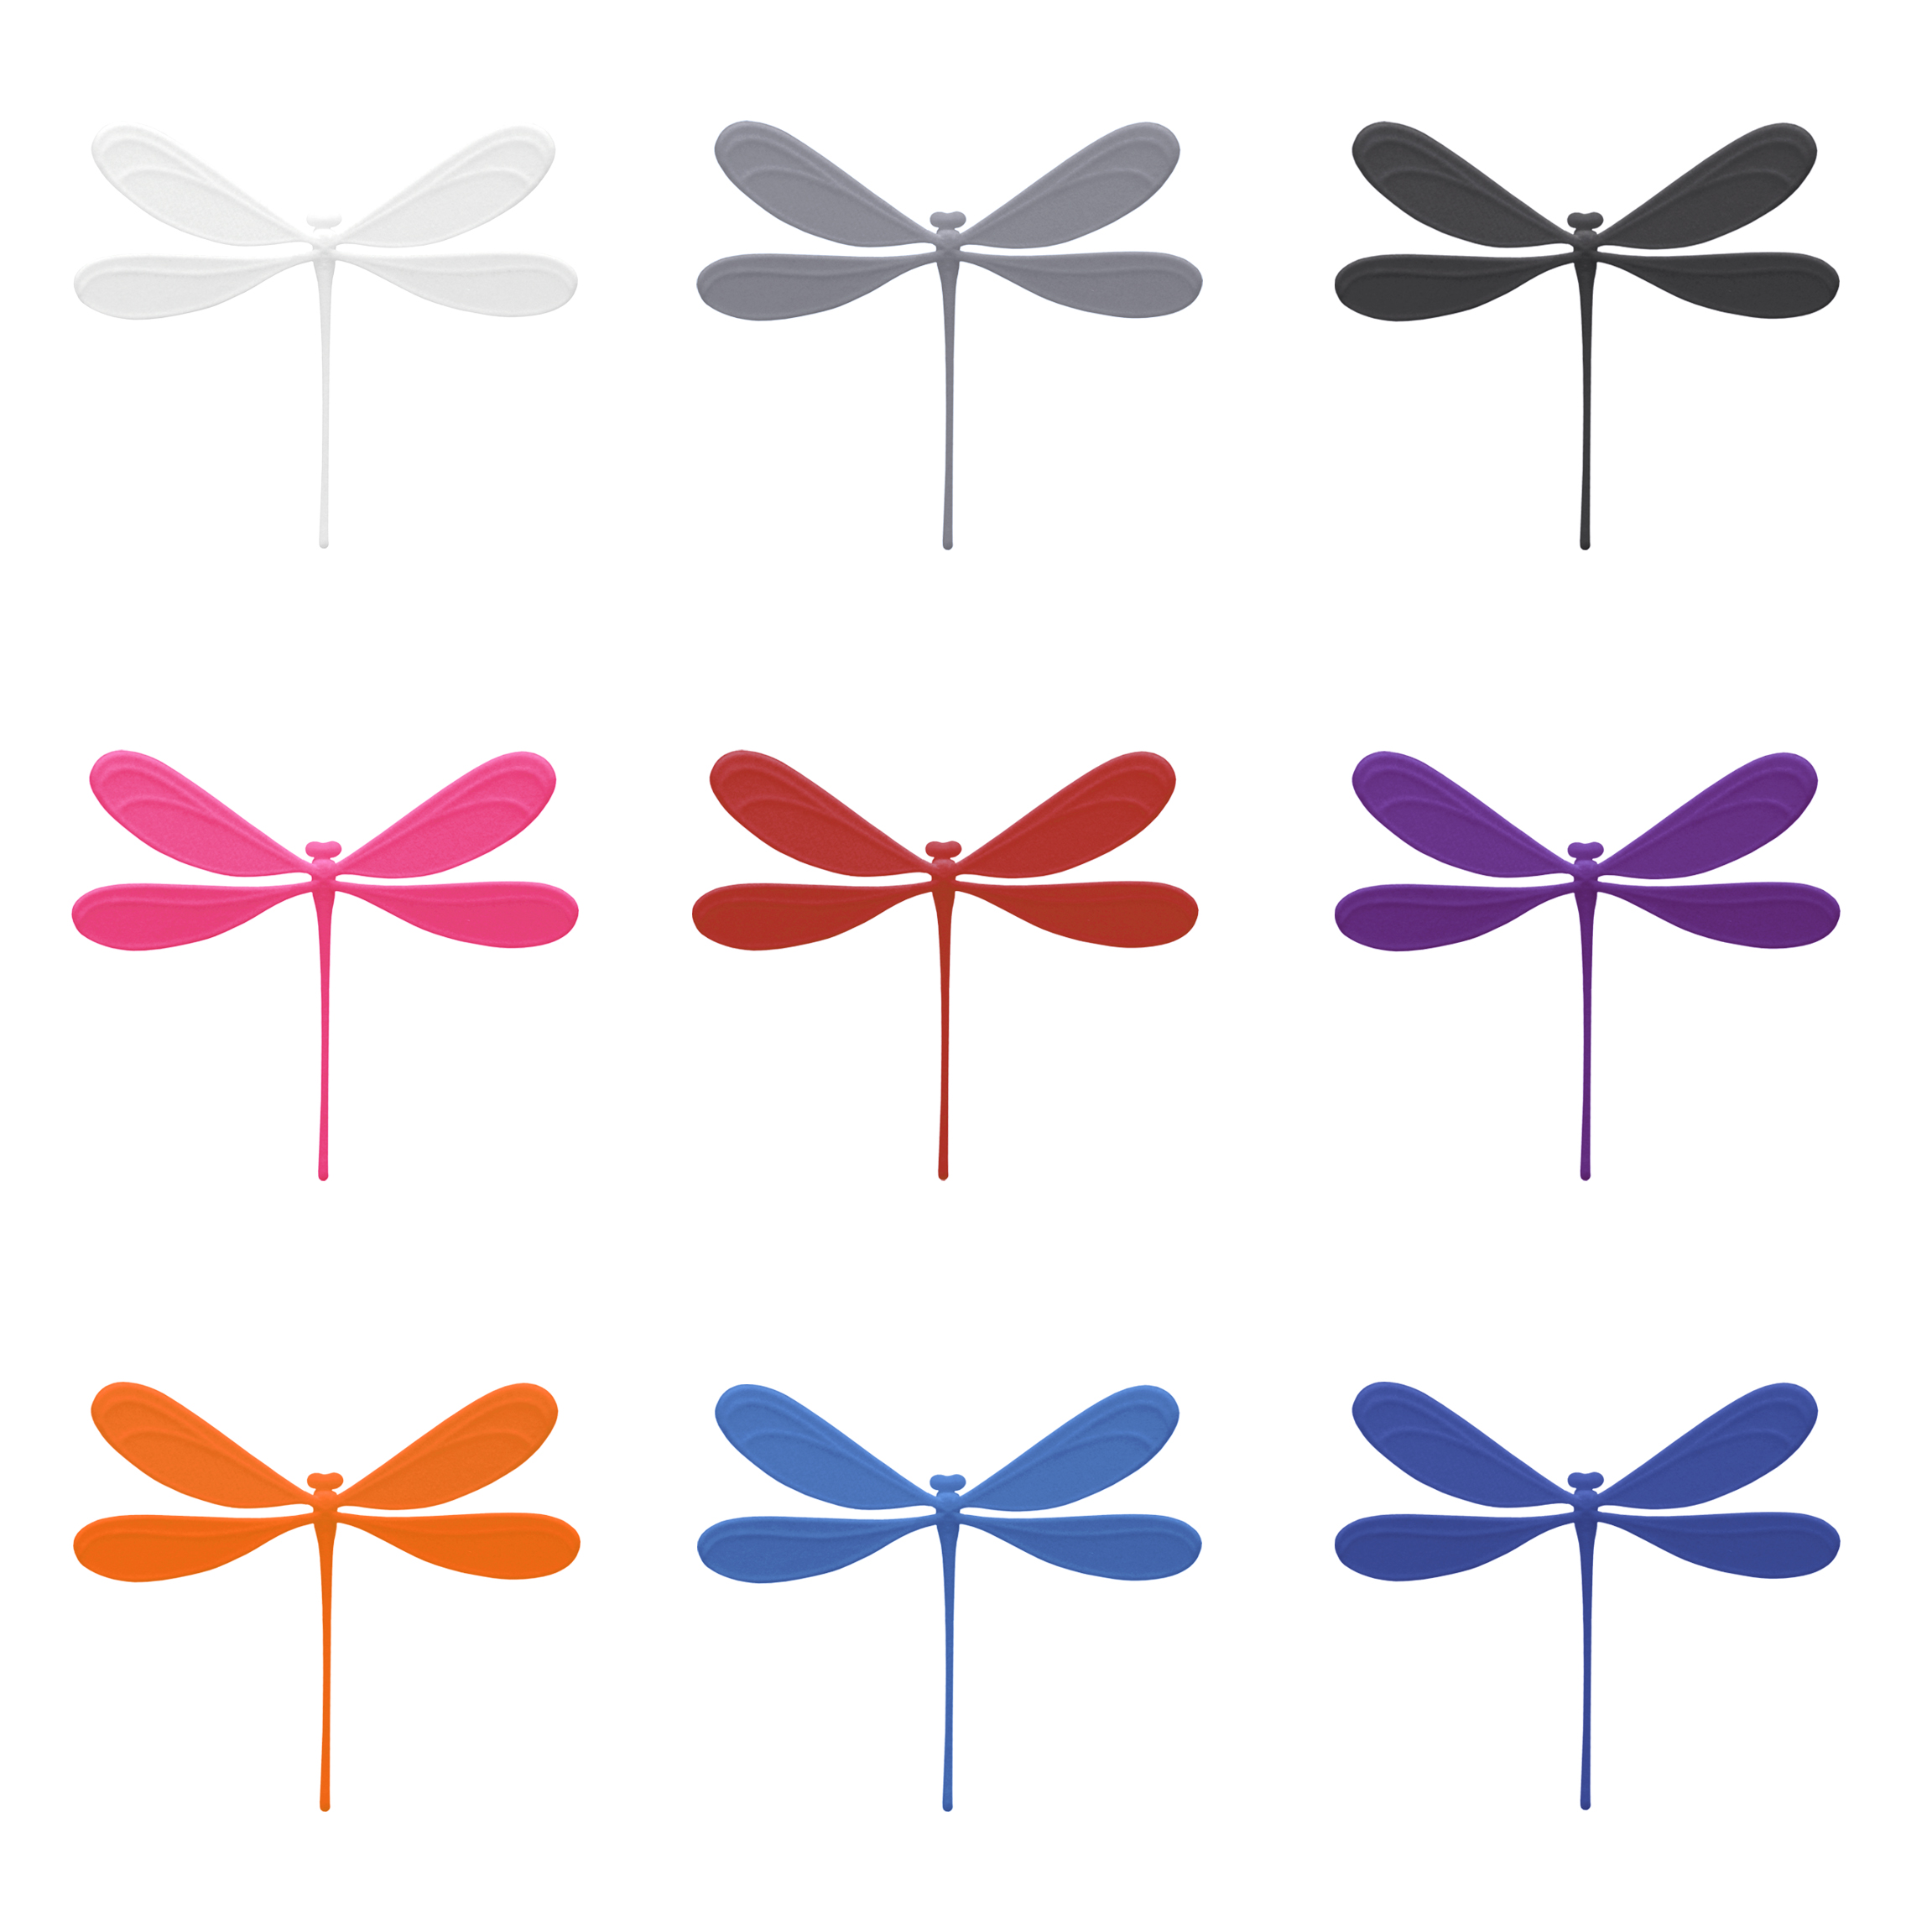 color overview of dragonfly shaped bookmarks